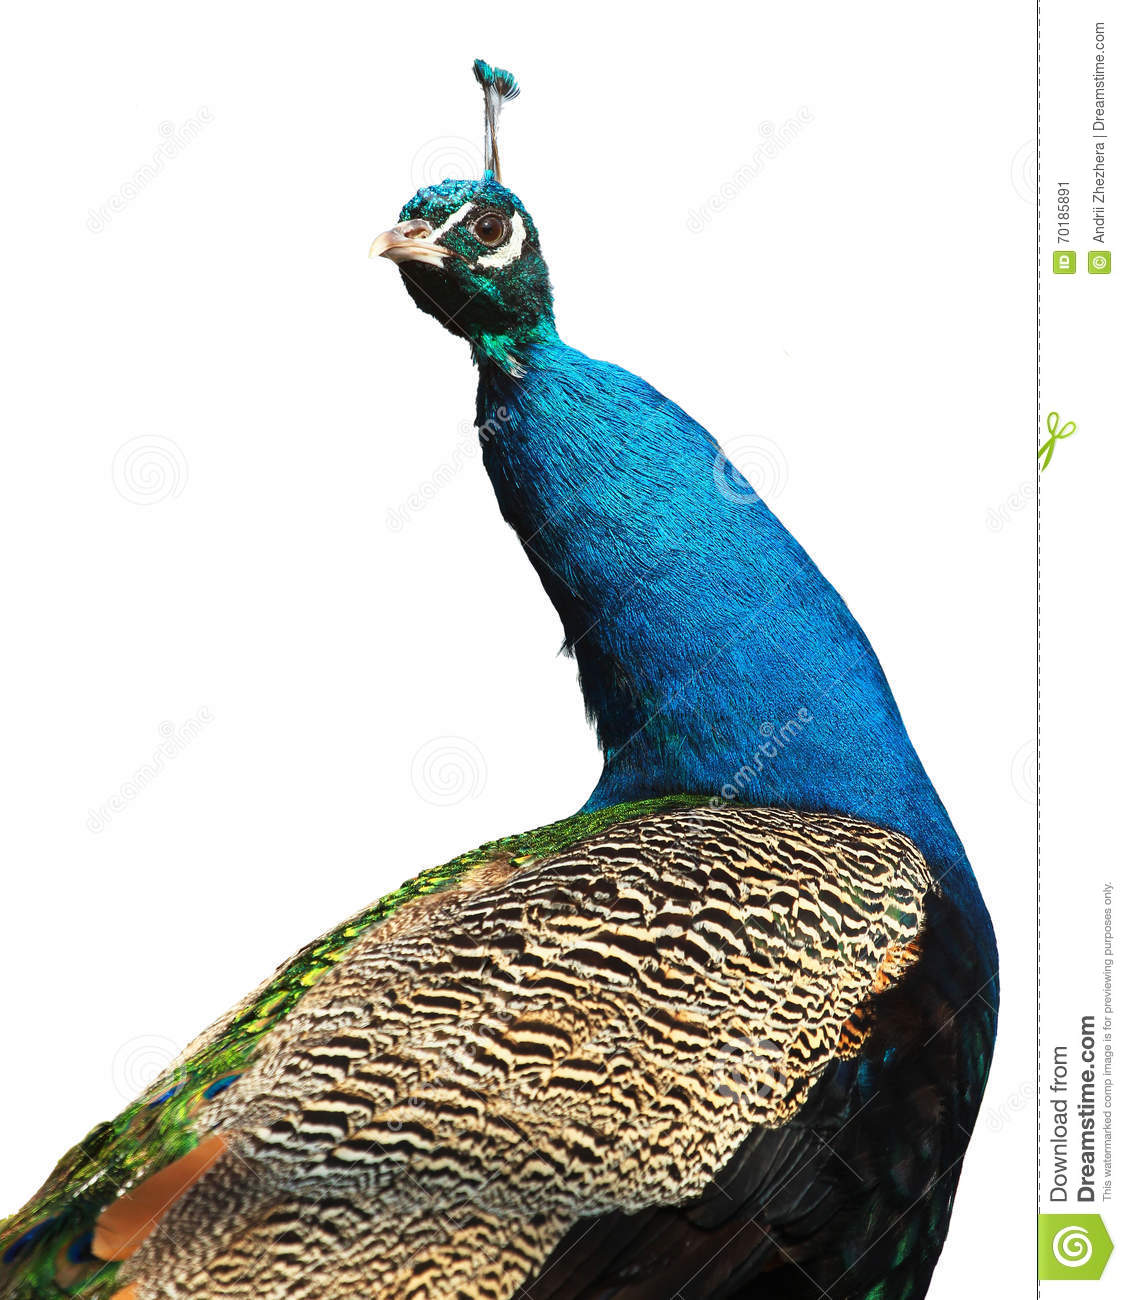 Male indian peacock (Pavo cristatus) isolated on white backgroun